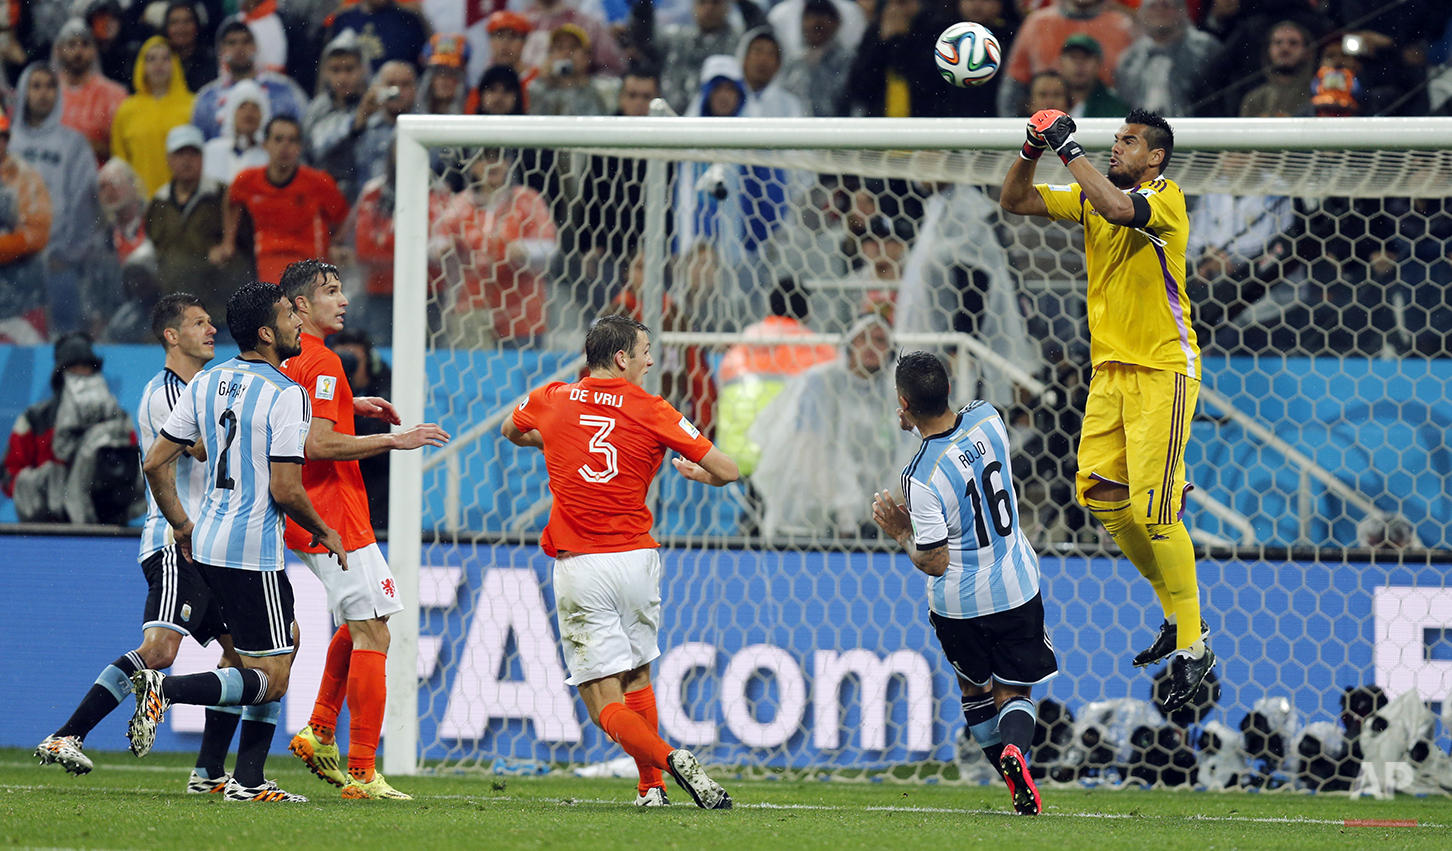 Argentina's goalkeeper Sergio Romero deflects a ball during the World Cup semifinal soccer match between the Netherlands and Argentina at the Itaquerao Stadium in Sao Paulo, Brazil, Wednesday, July 9, 2014. (AP Photo/Frank Augstein)